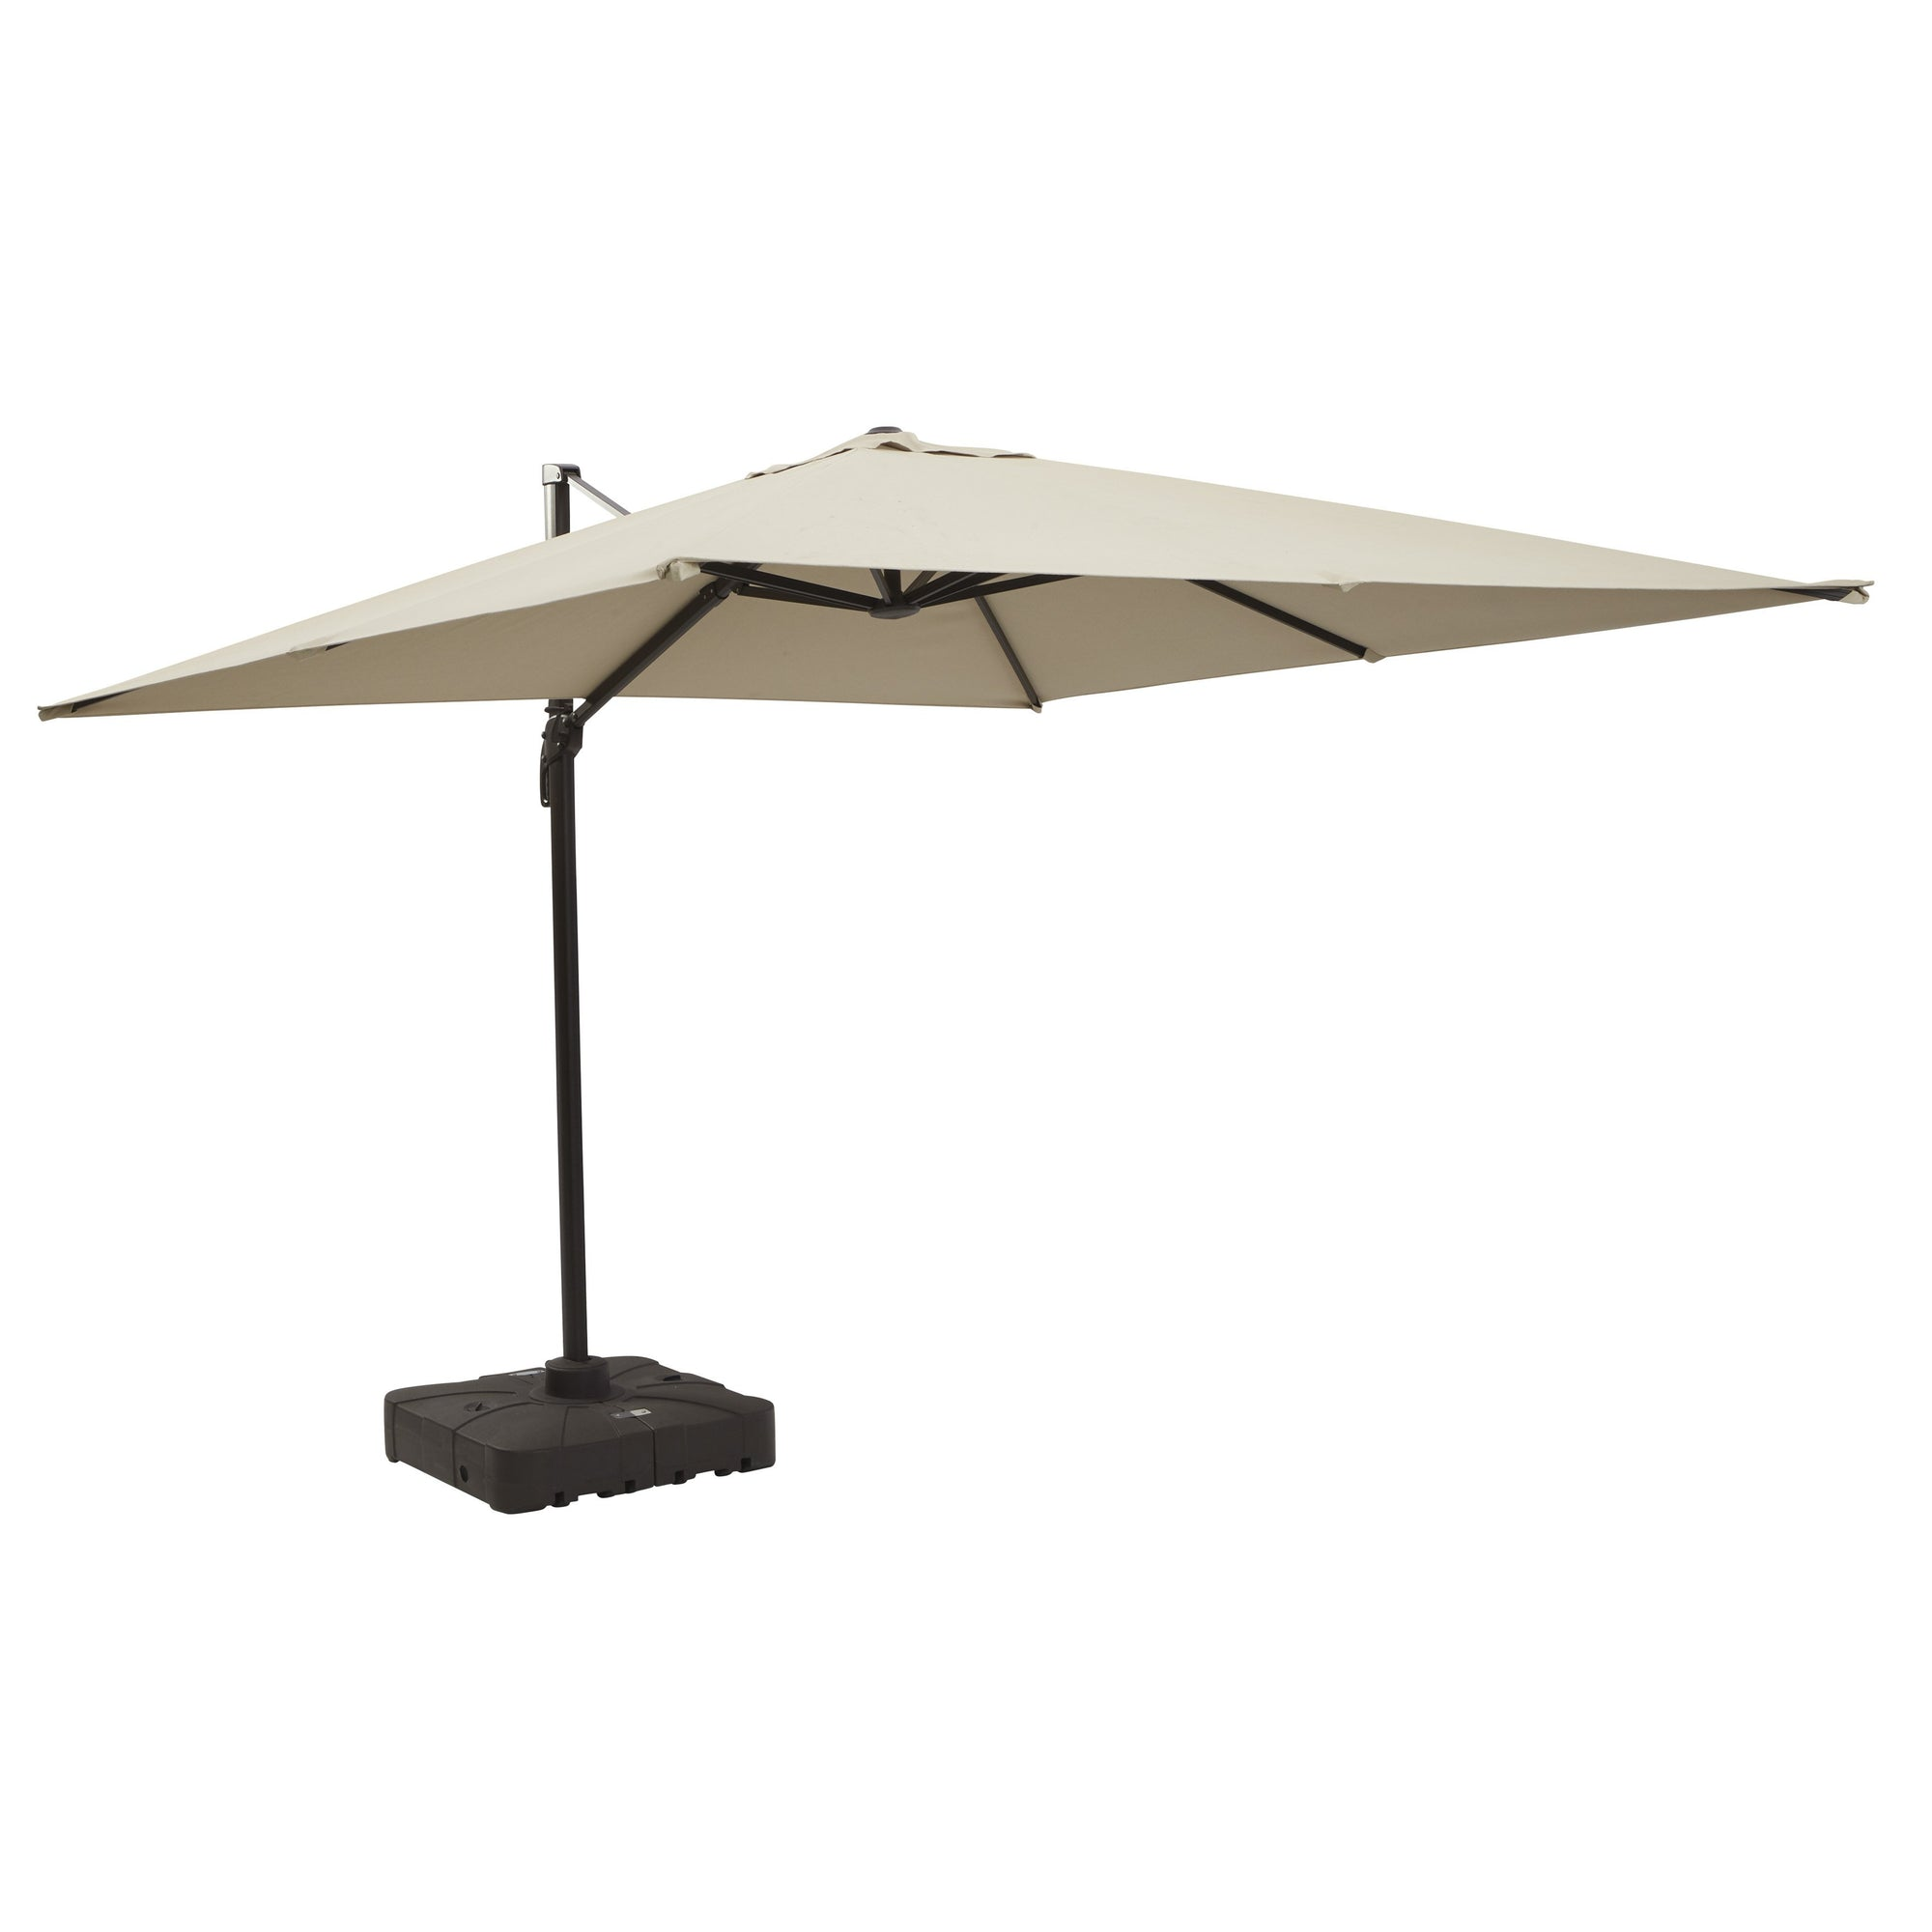 10-Foot Cantilever Umbrella with Base - Beige